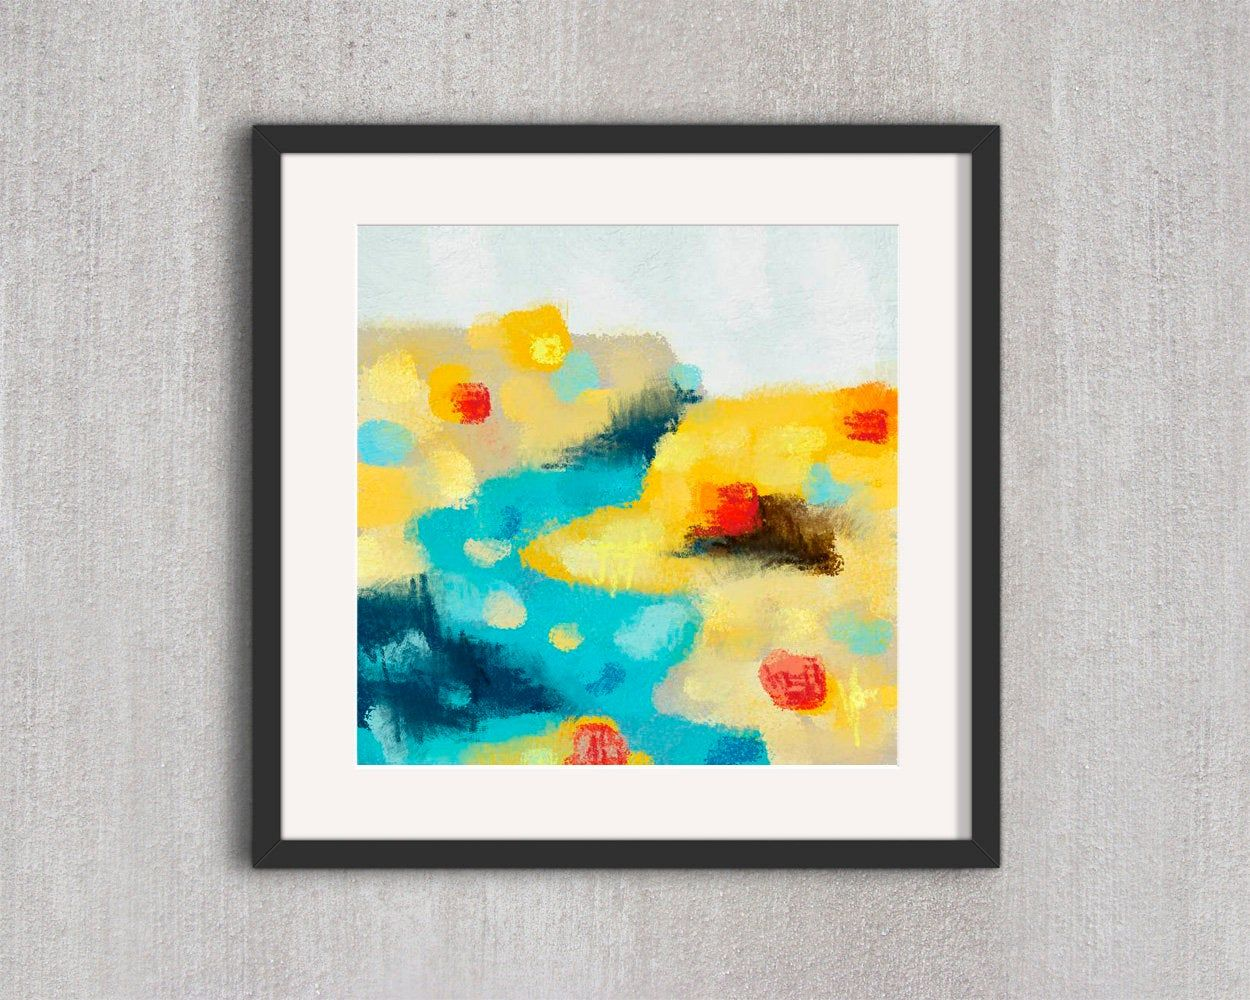 Abstract Landscape Printable Abstract Art Abstract Wall Art Downloadable Wall Art Abstract Art Print Abstract Home Decor In 2020 Abstract Wall Art Abstract Abstract Landscape